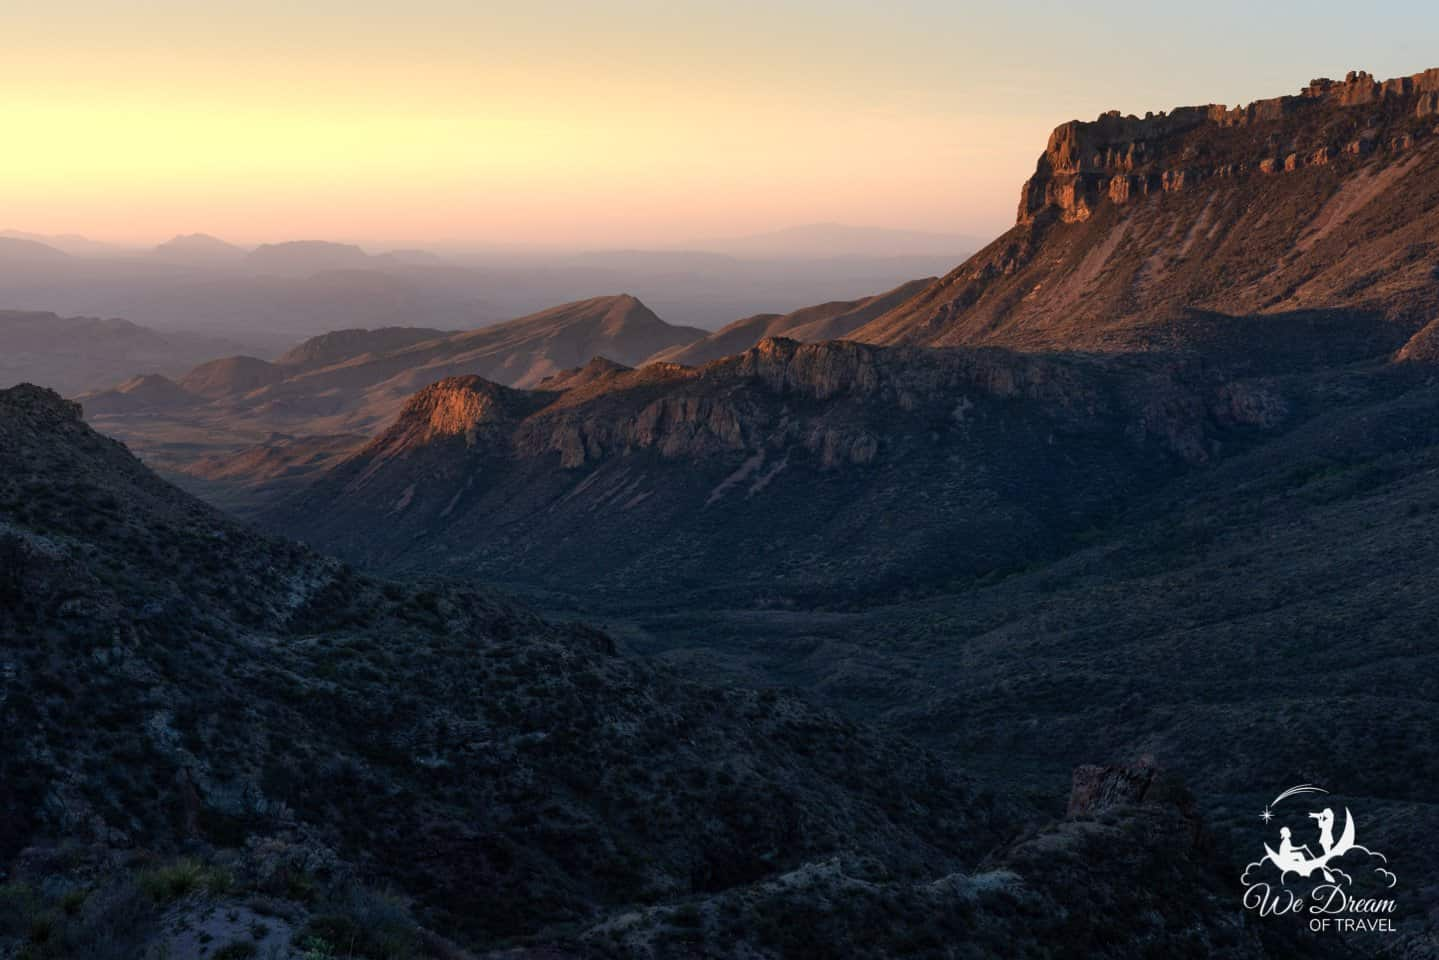 Sunrise photography from Lost Mine Trail shows the Chisos Basin in golden light.